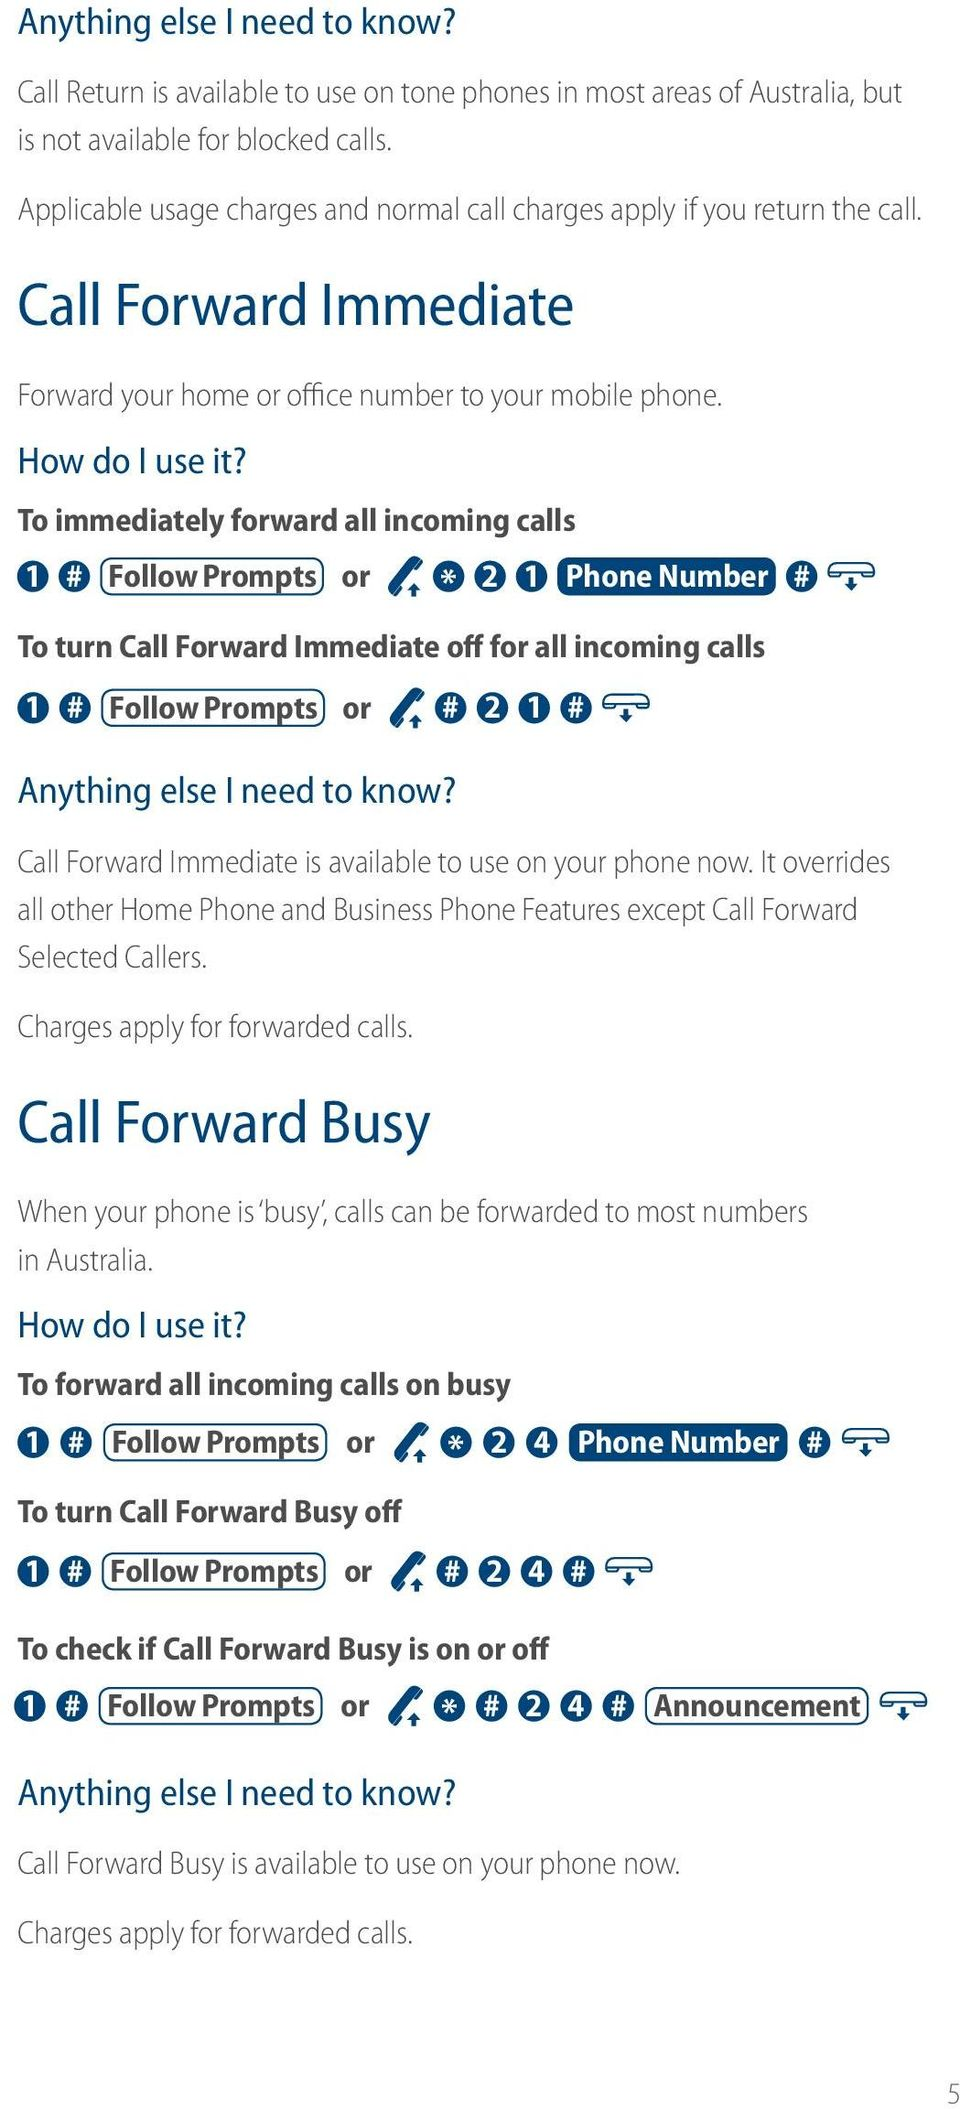 To immediately forward all incoming calls 1 # Follow Prompts or * 2 1 Phone Number # To turn Call Forward Immediate off for all incoming calls 1 # Follow Prompts or # 2 1 # Call Forward Immediate is